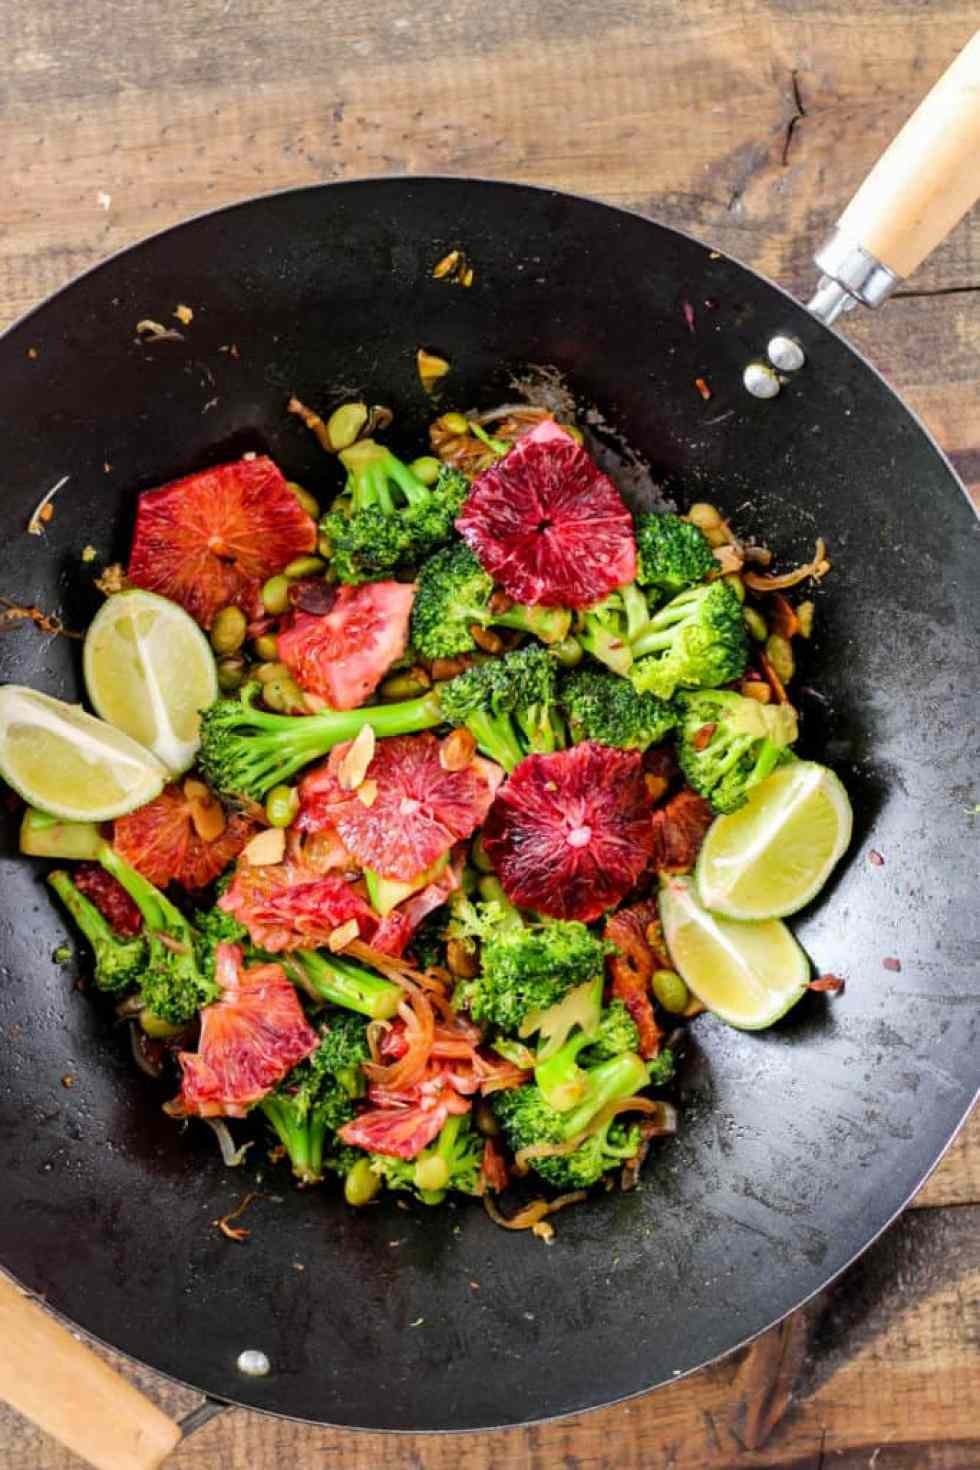 Broccoli Stir-Fry with Blood Oranges in black wok against wood background.